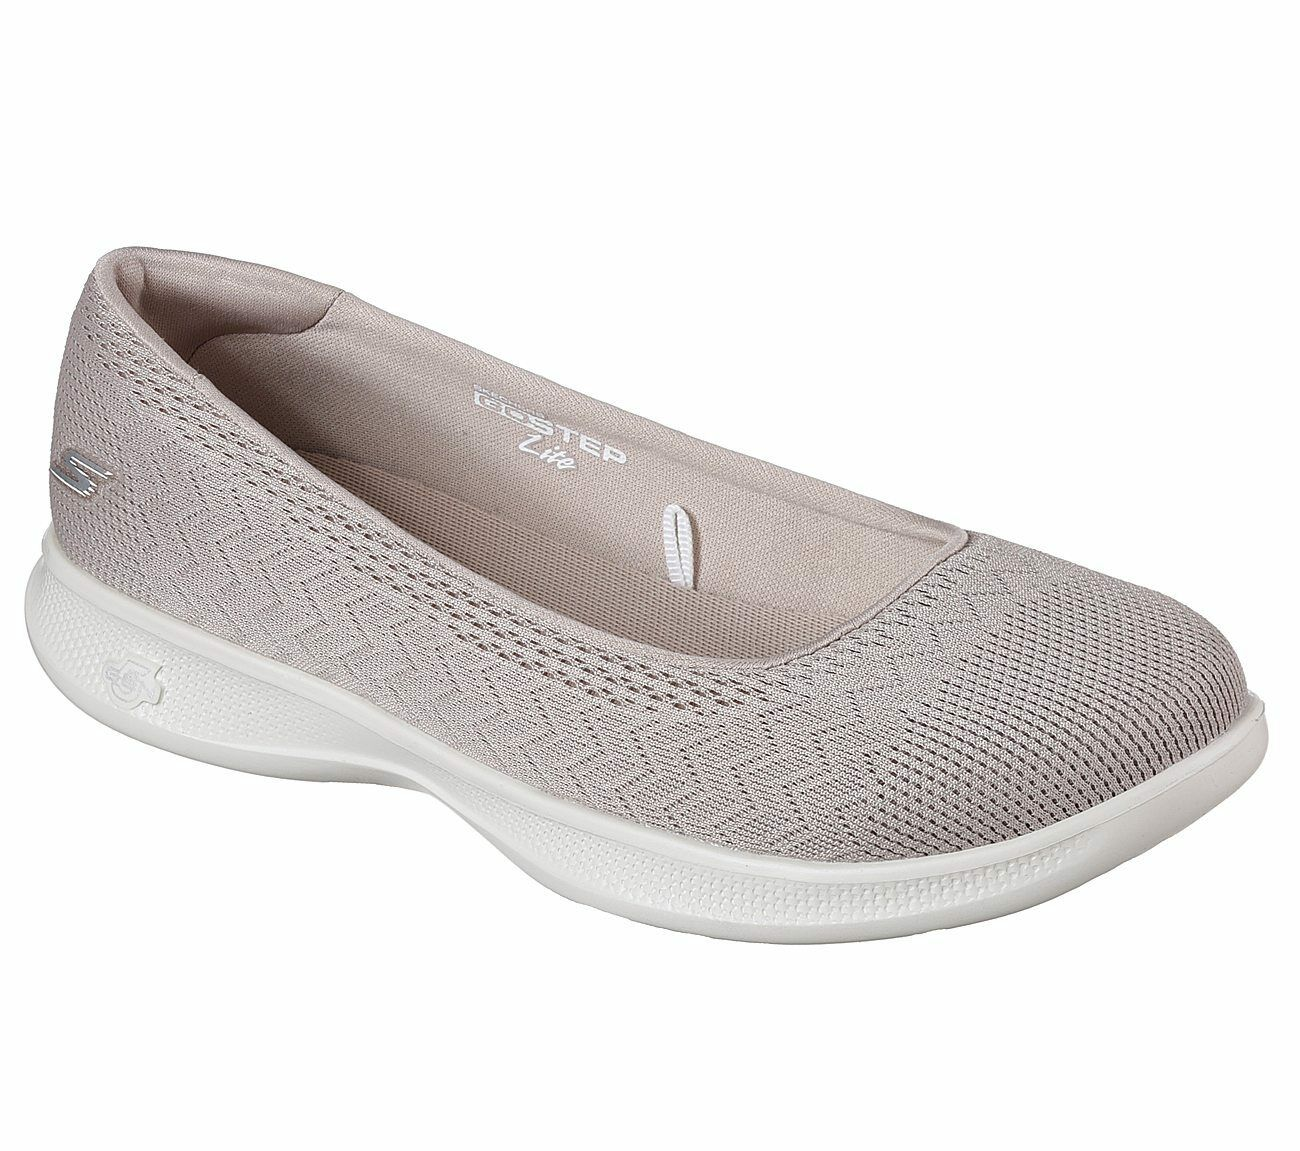 New Womens Skechers Go Step Lite Solace shoes Style 14476 Taupe 76H dr